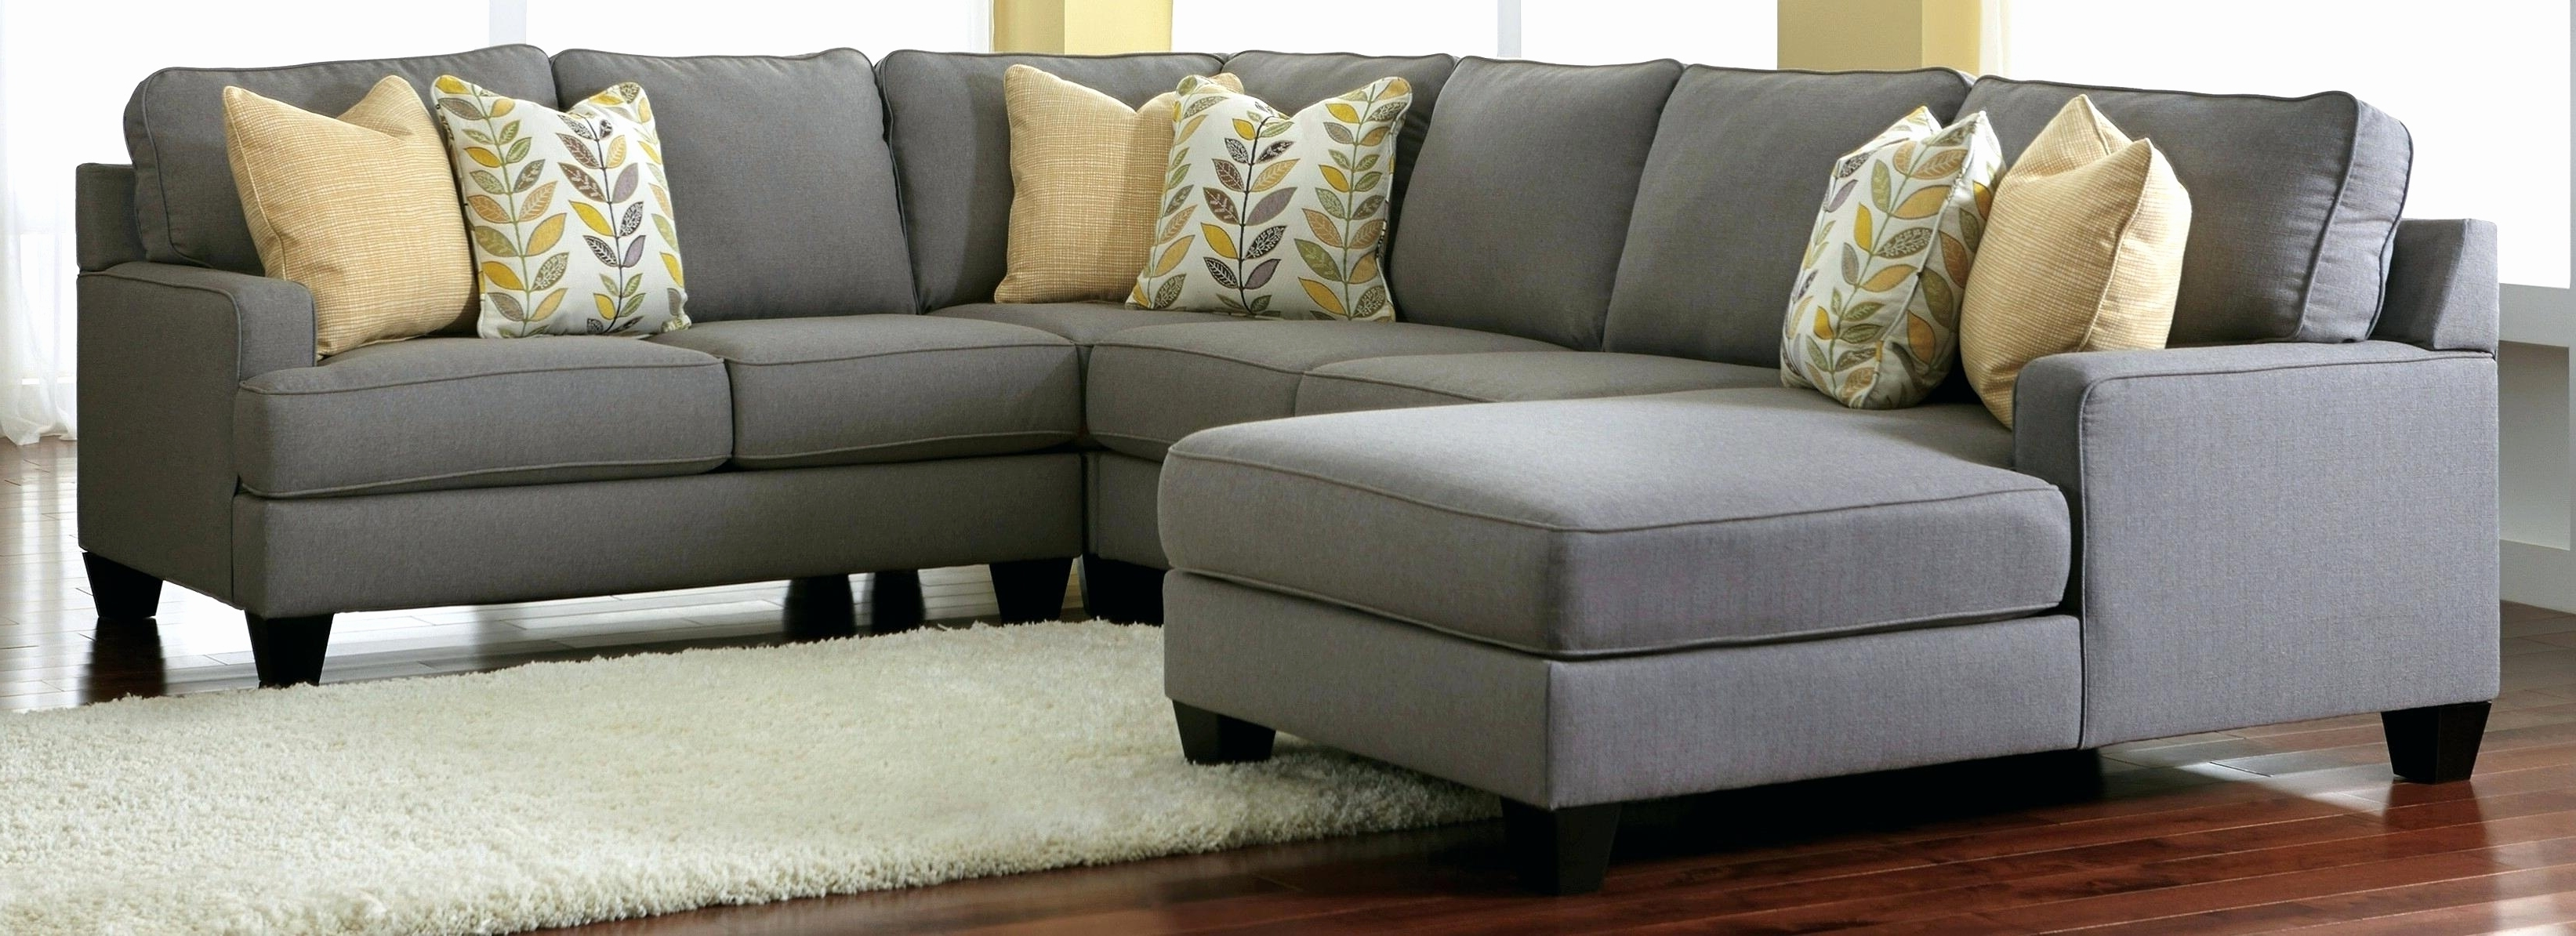 New Charcoal Grey Sectional Sofa With Chaise 2018 – Couches And In Current Gray Sectional Sofas With Chaise (View 12 of 15)